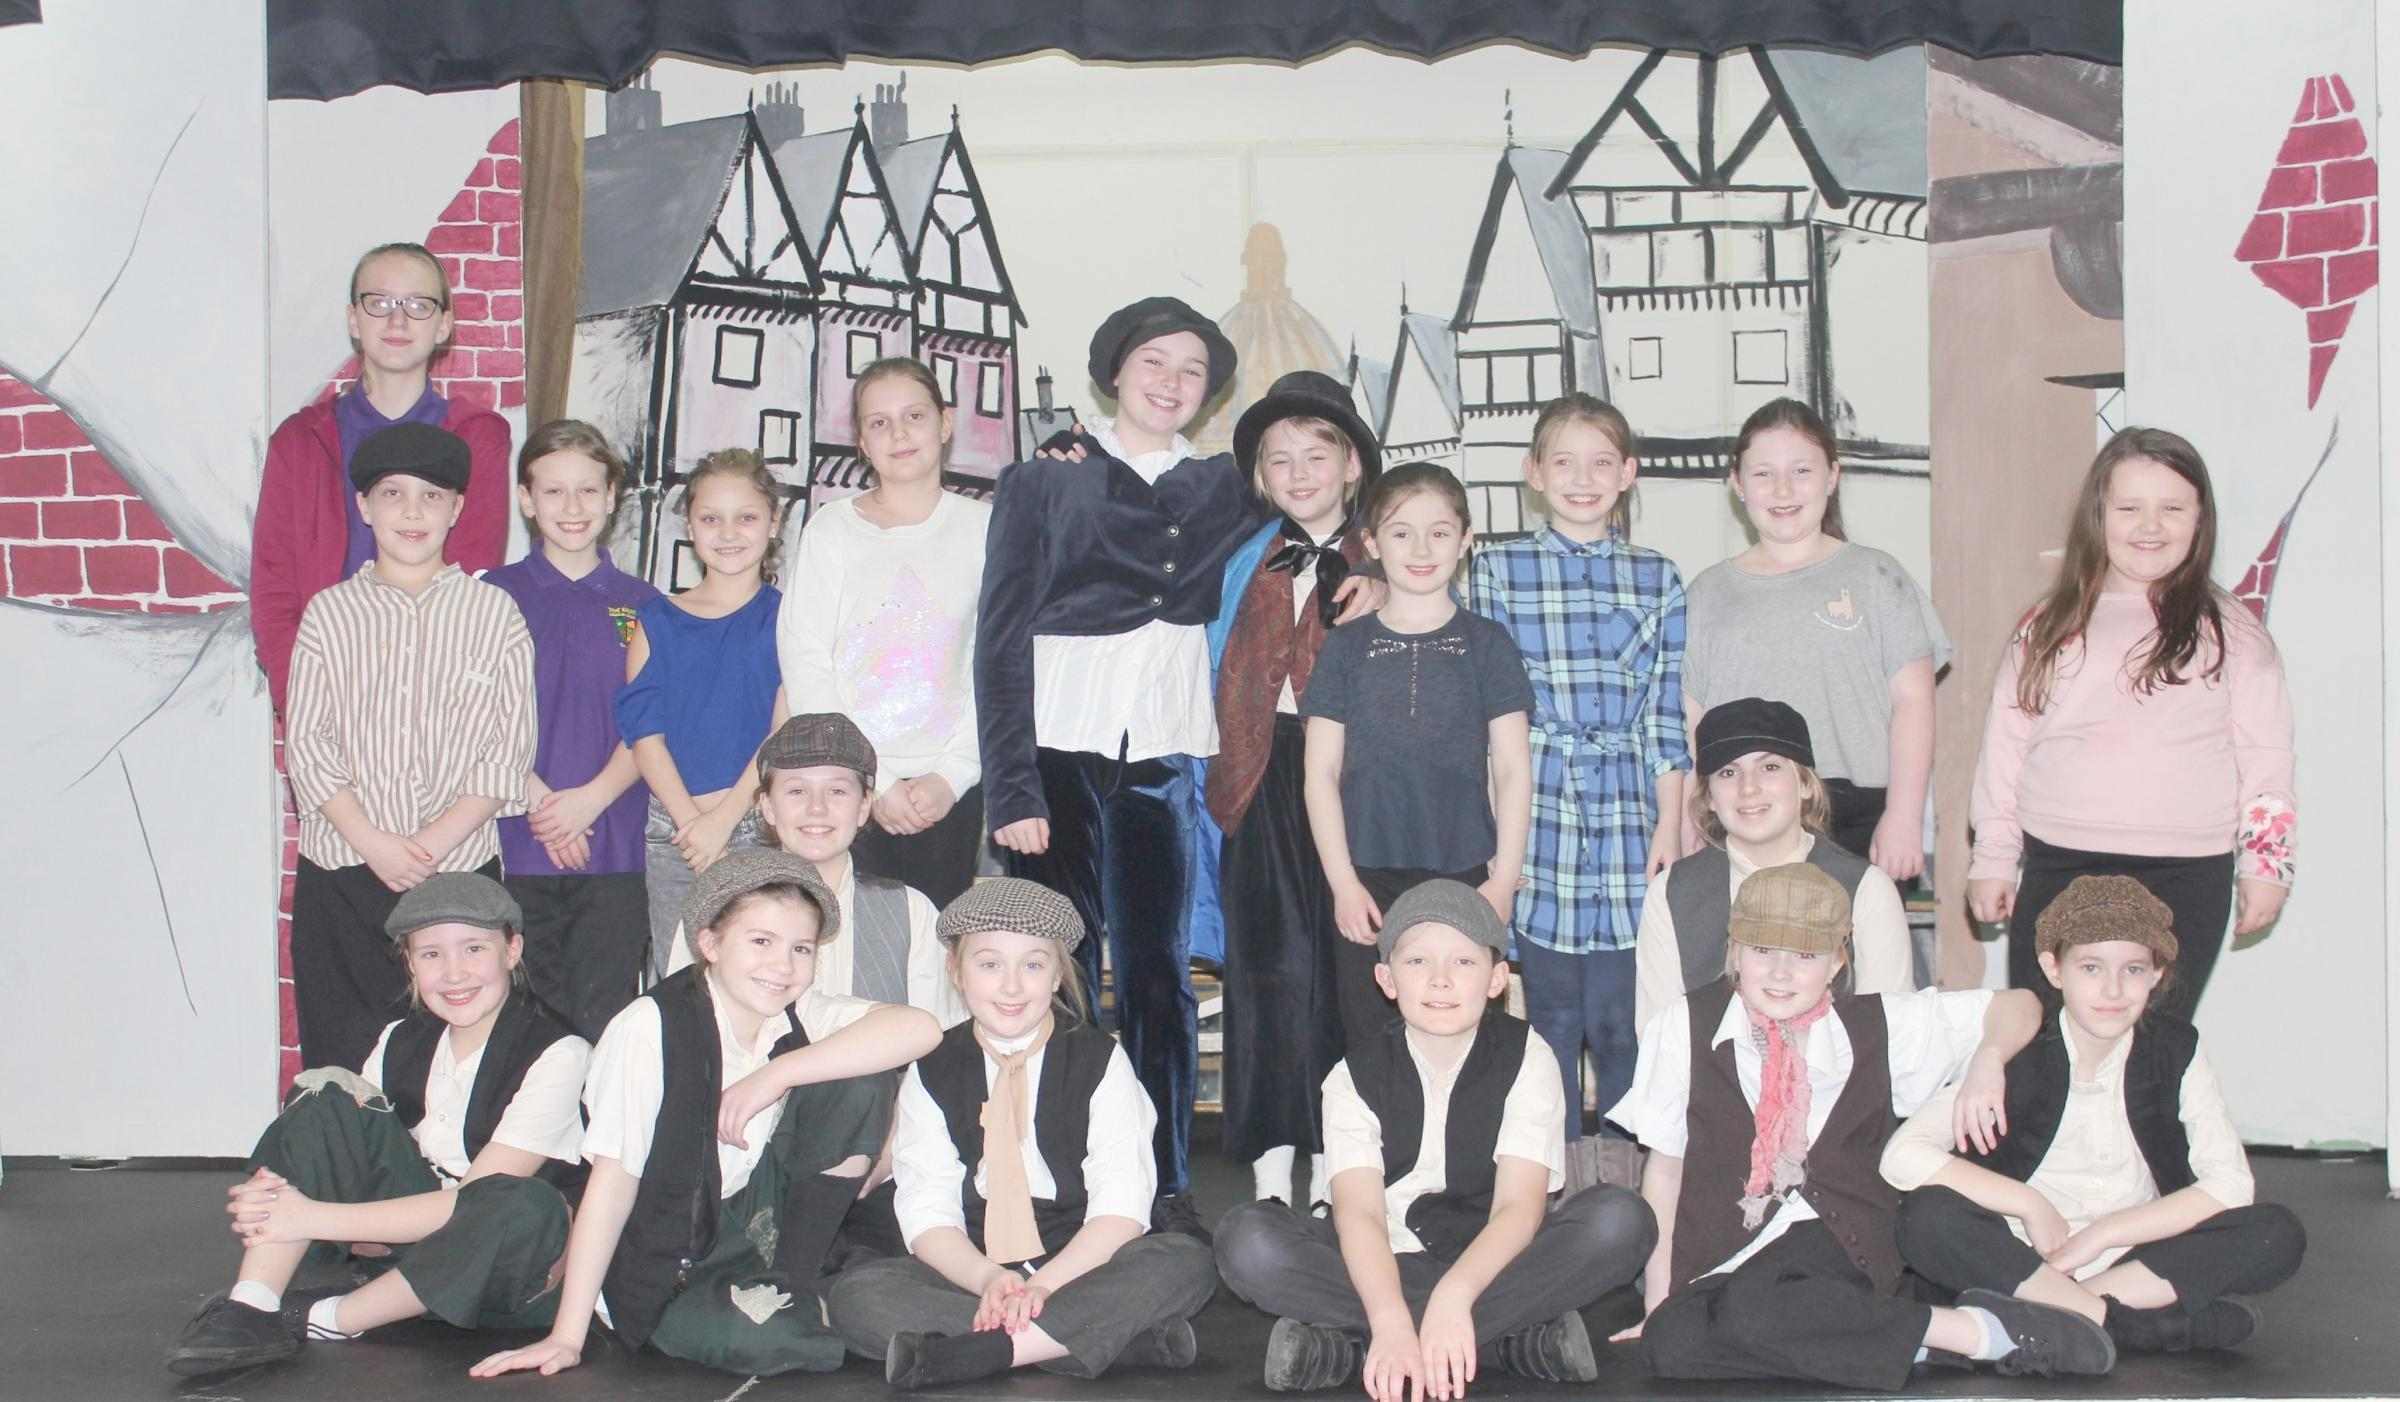 The Heath Drama Group is staging Lionel Bart's classical musical Oliver at The Heath Methodist Church in Runcorn